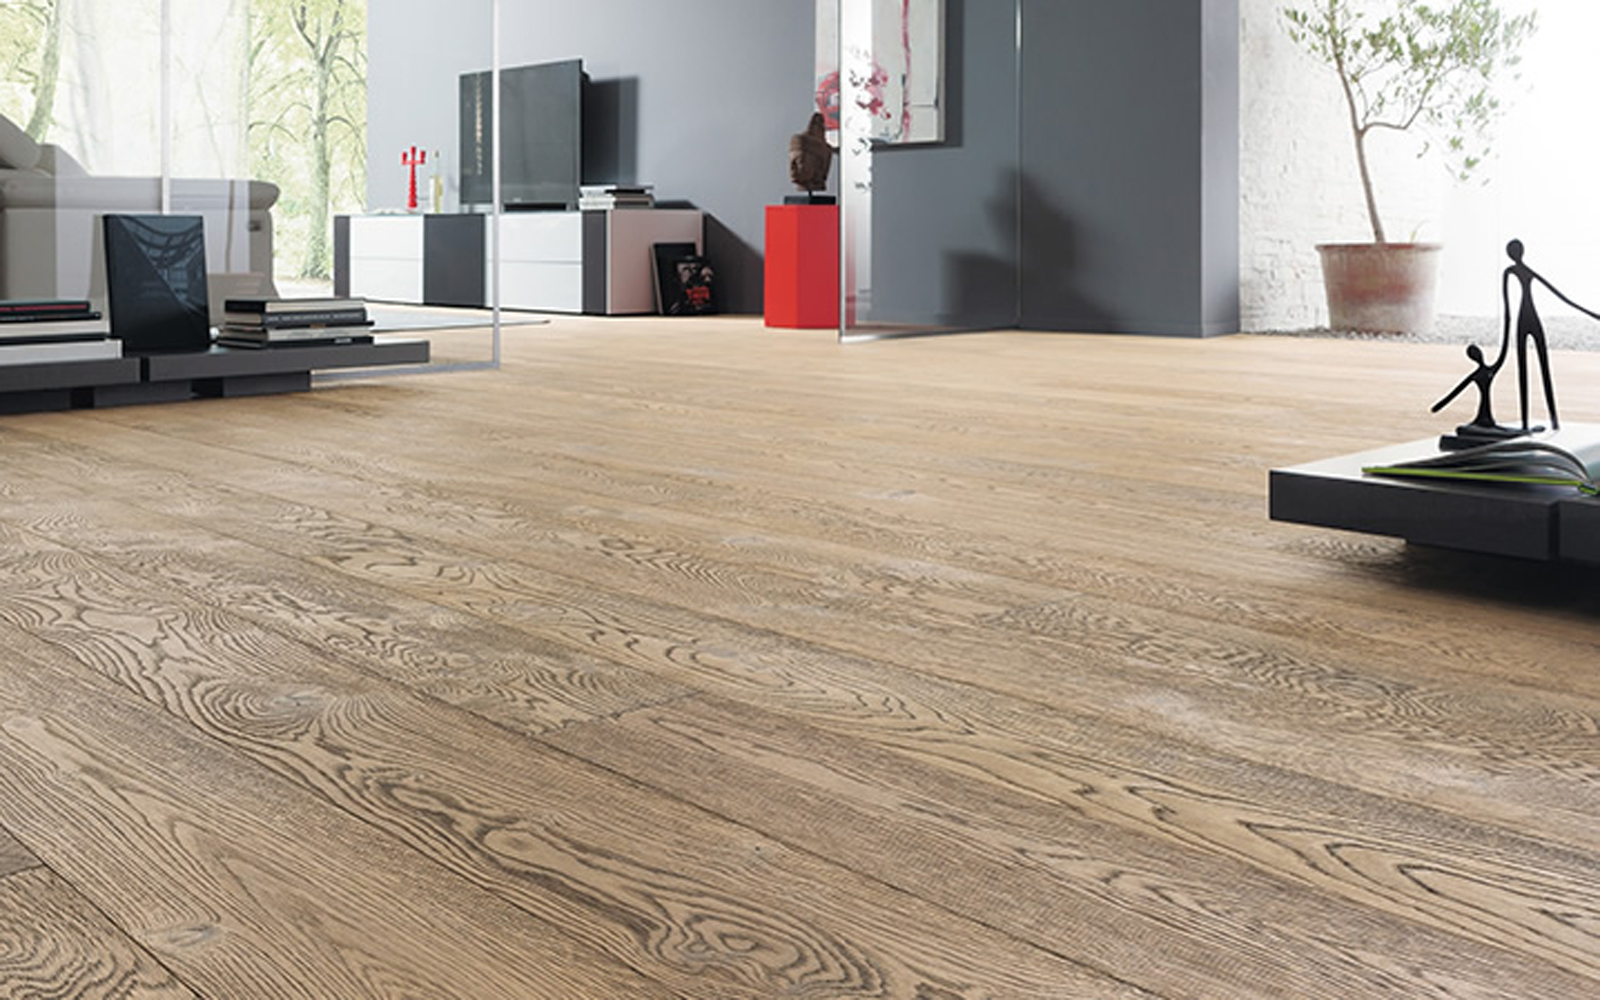 Hamptons Haro 4000 Plank Oak Tobacco Grey 4V Retro Brushed Naturalin Engineered Flooring